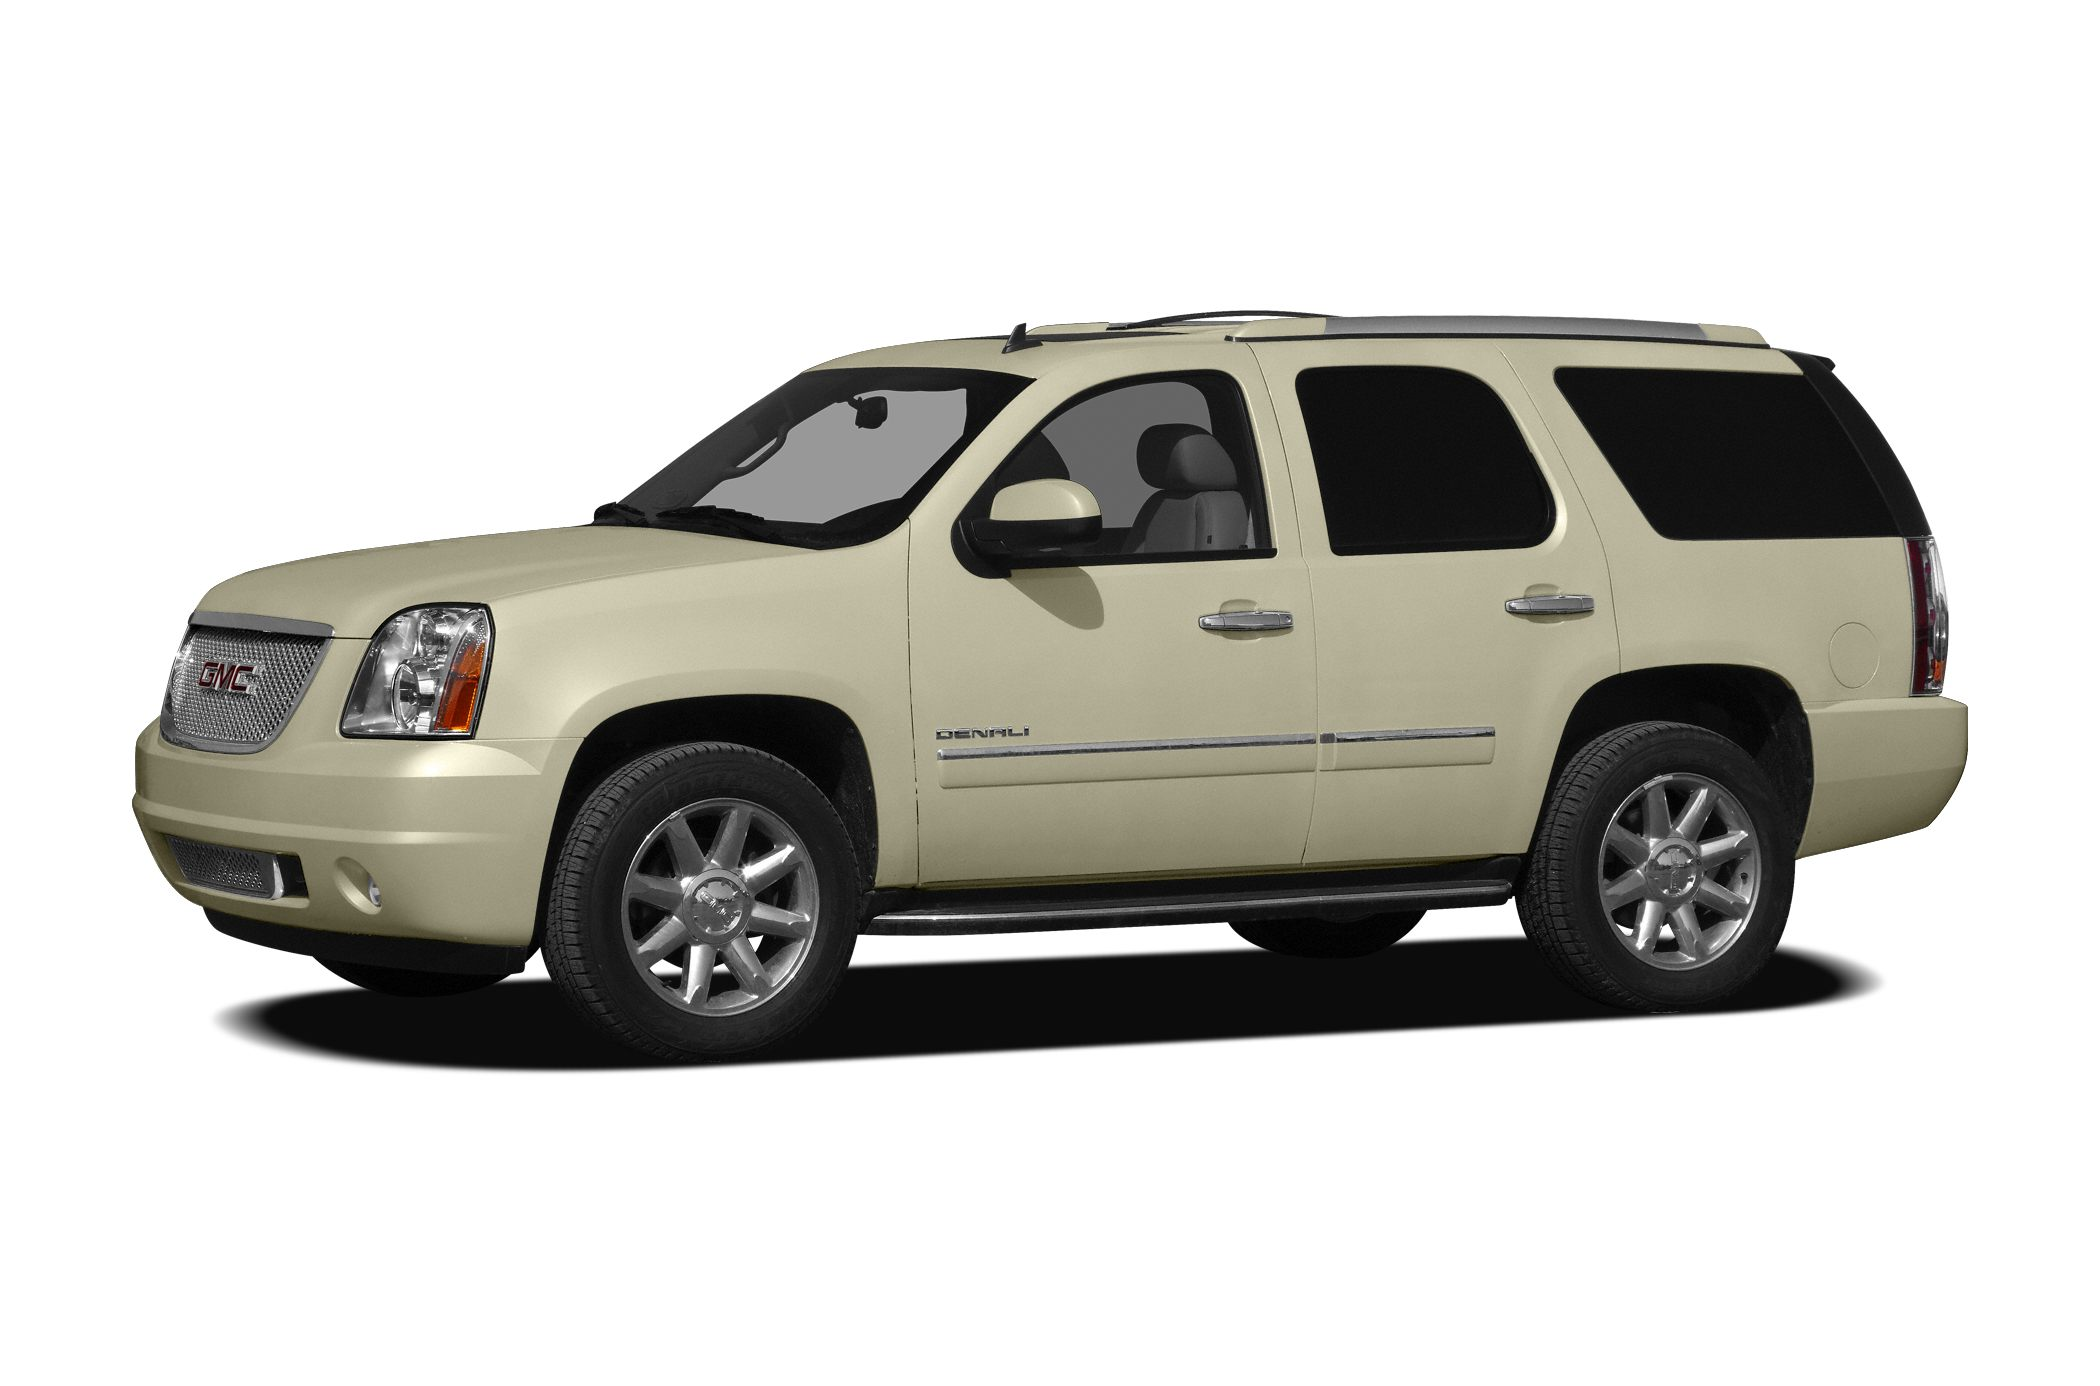 2010 GMC Yukon Denali ITS OUR 50TH ANNIVERSARY HERE AT MARTYS AND TO CELEBRATE WERE OFFERING THE